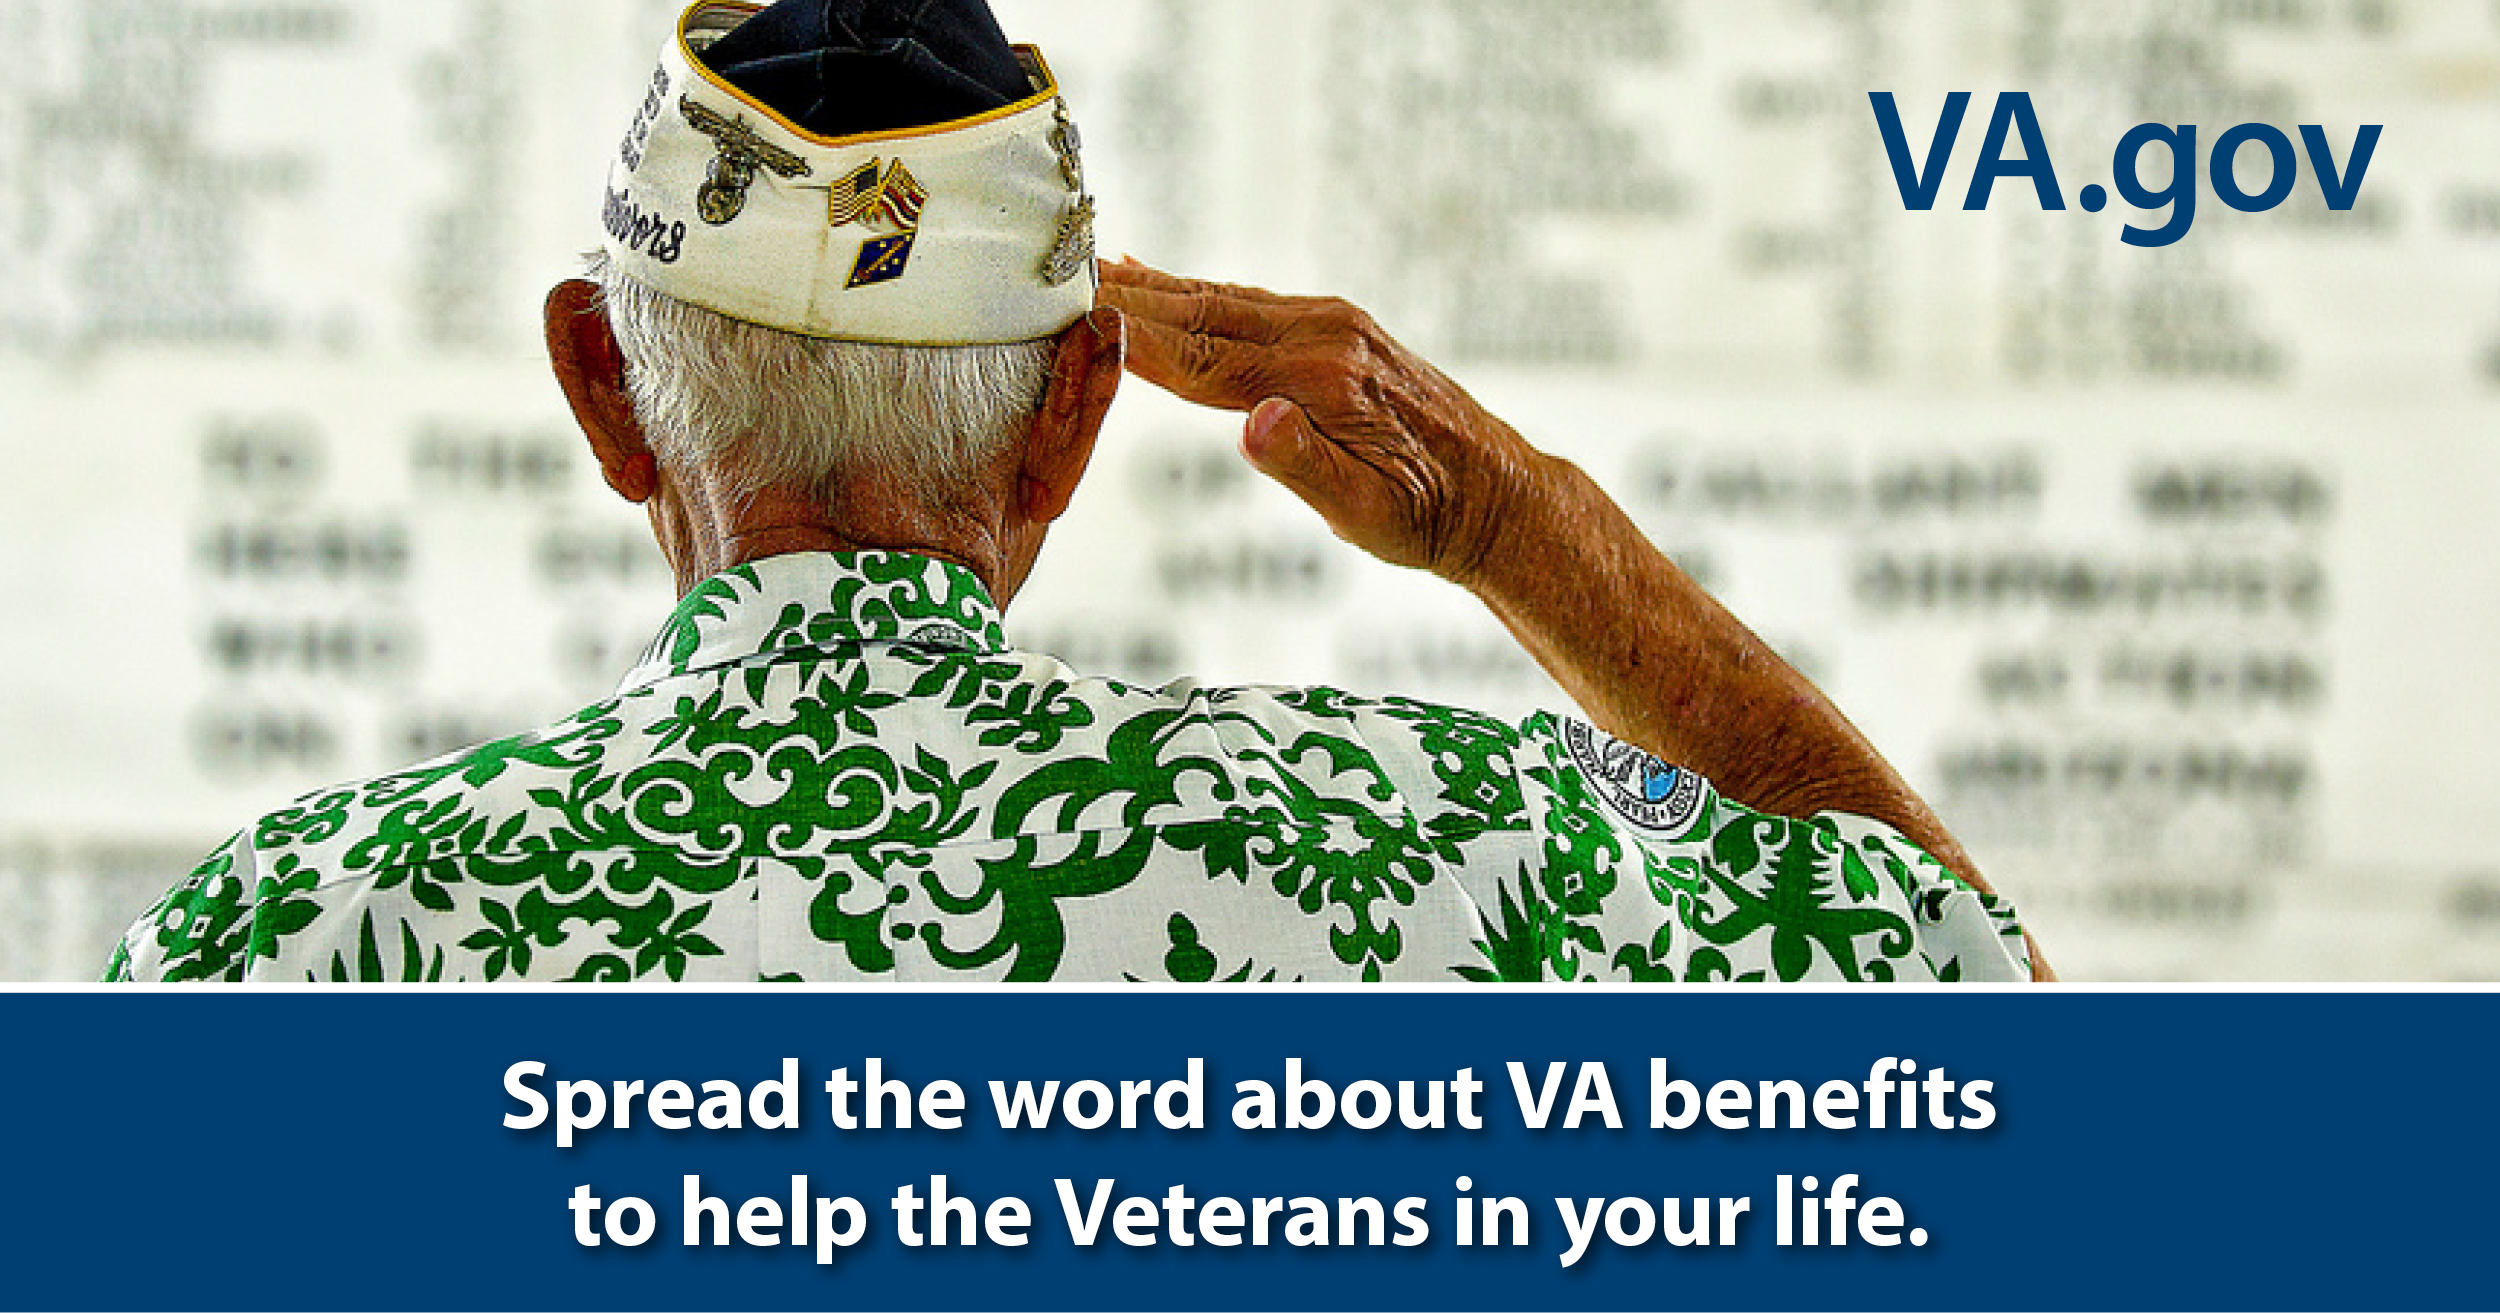 Spread the word about VA benefits to help the Veterans in your life.